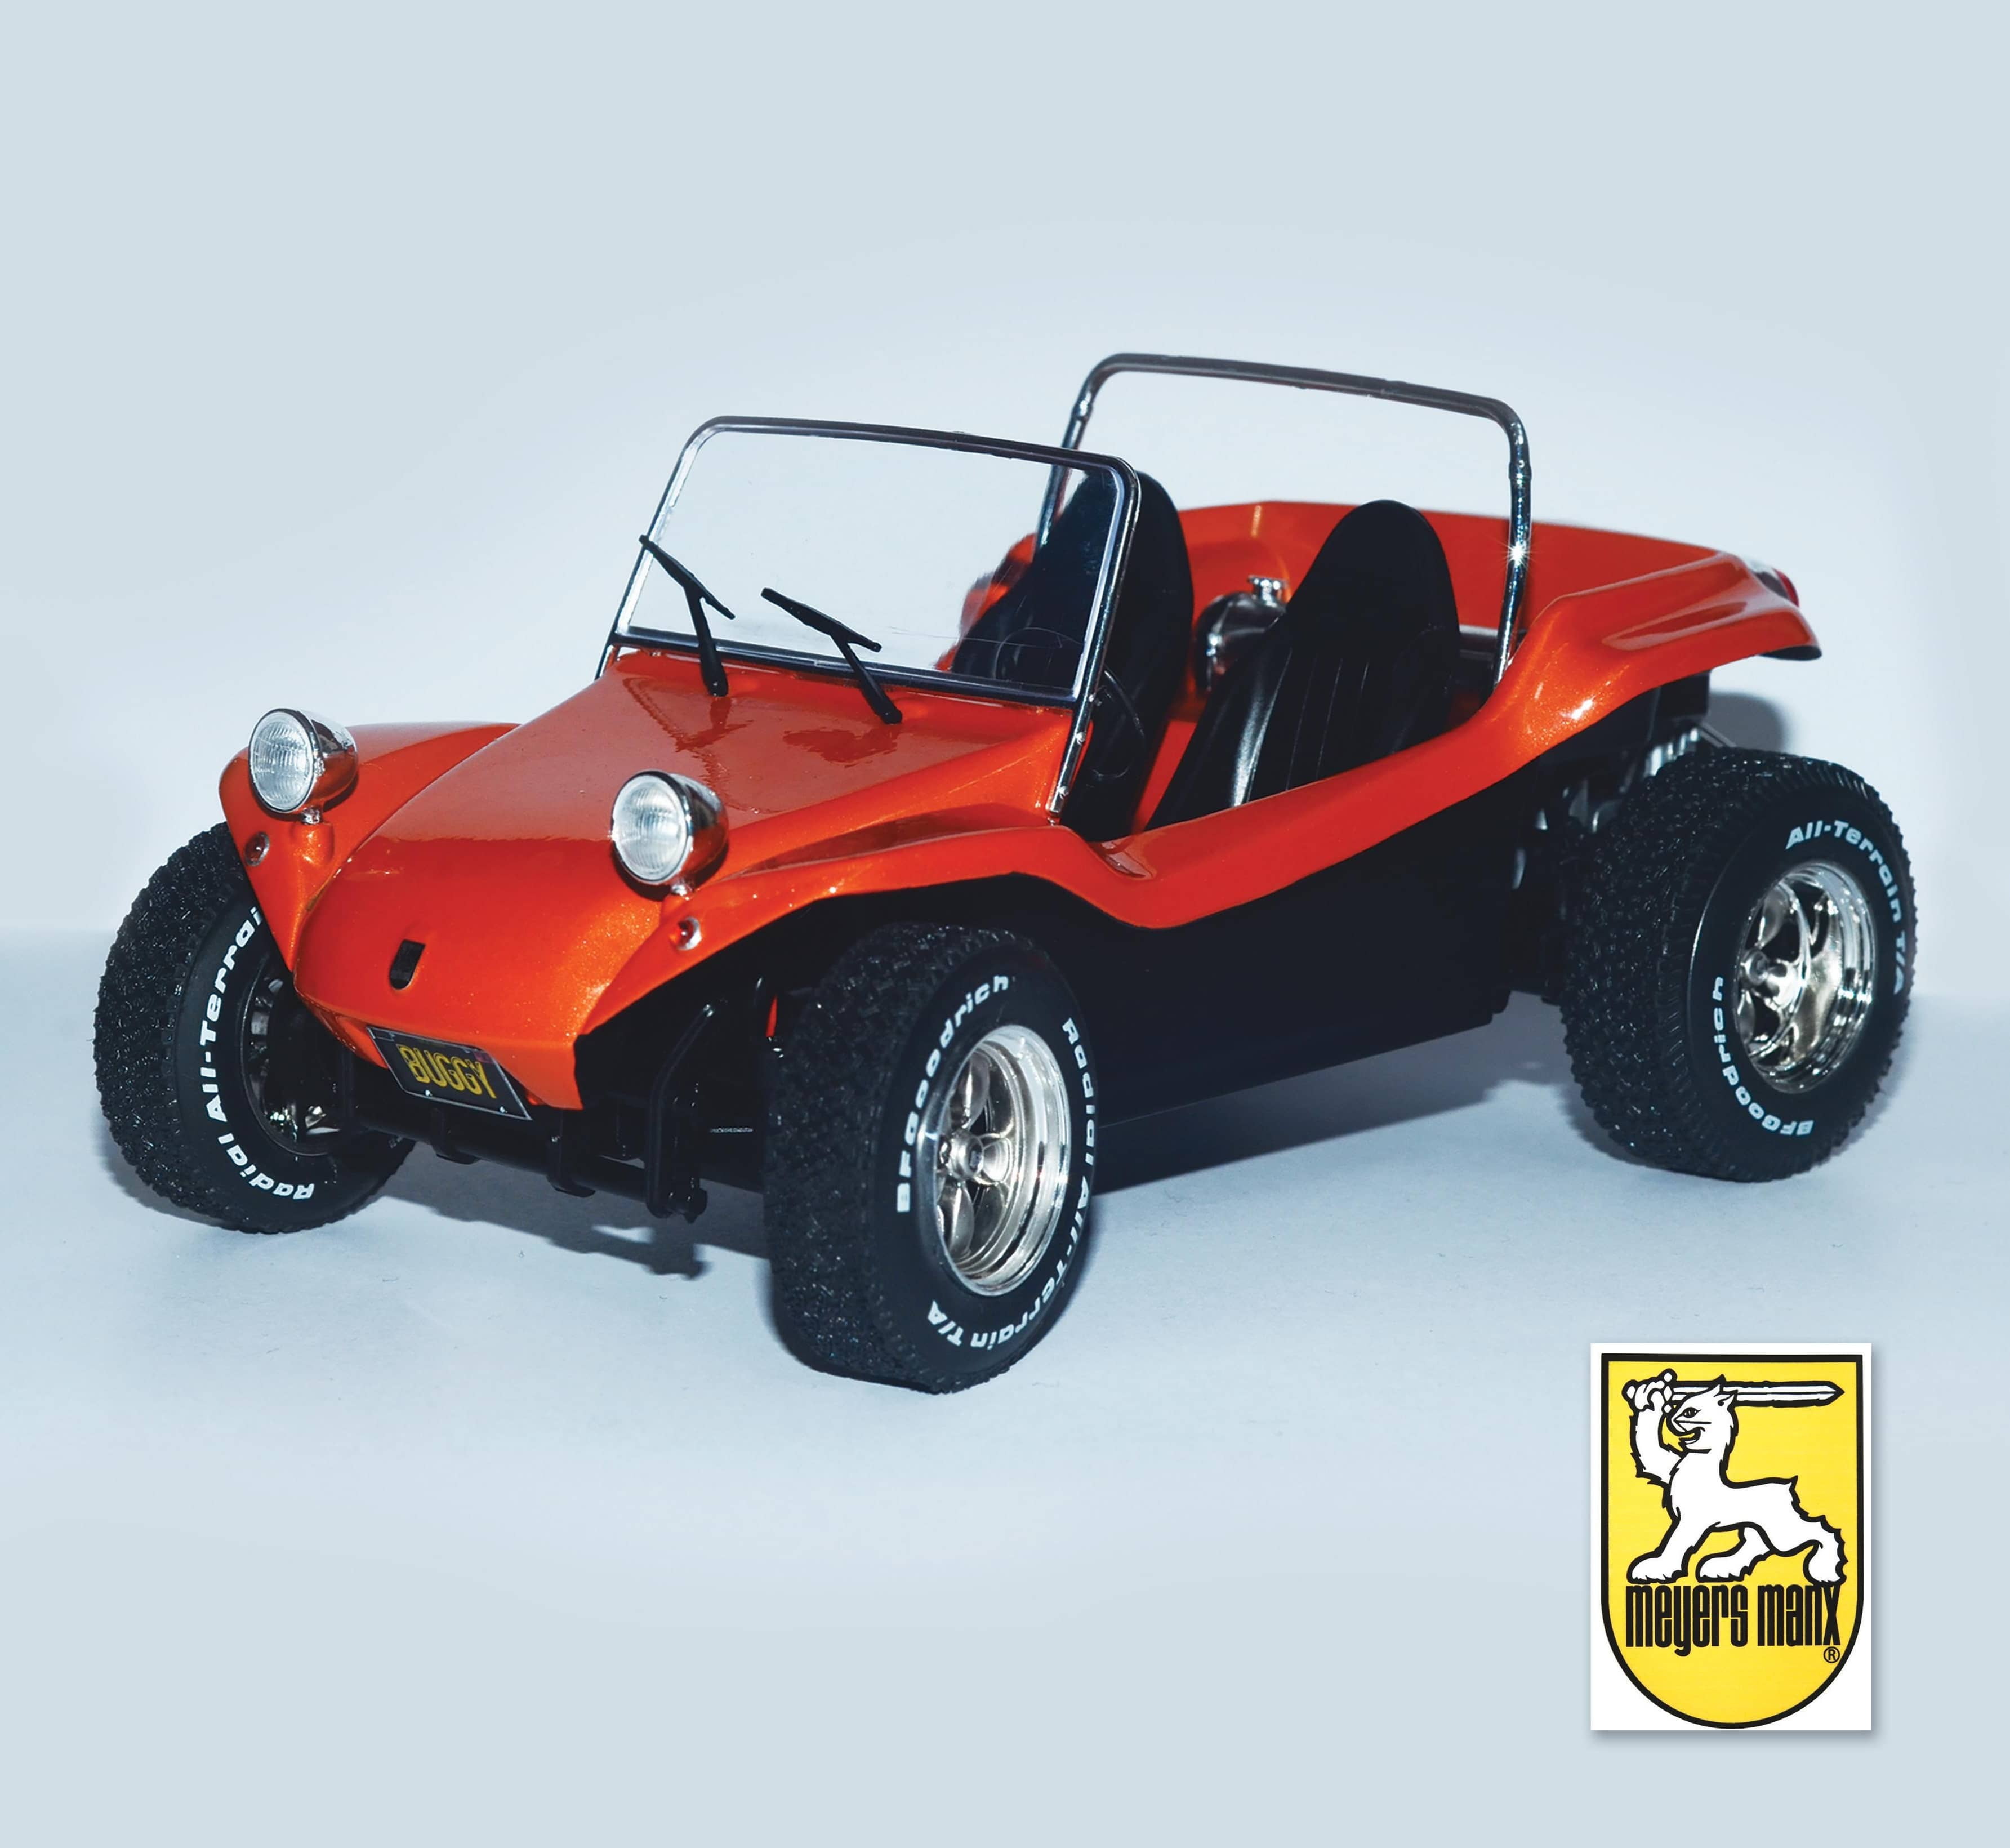 Solido - 1970 Meyers Manx Convertible - The definitive dune buggy done right!